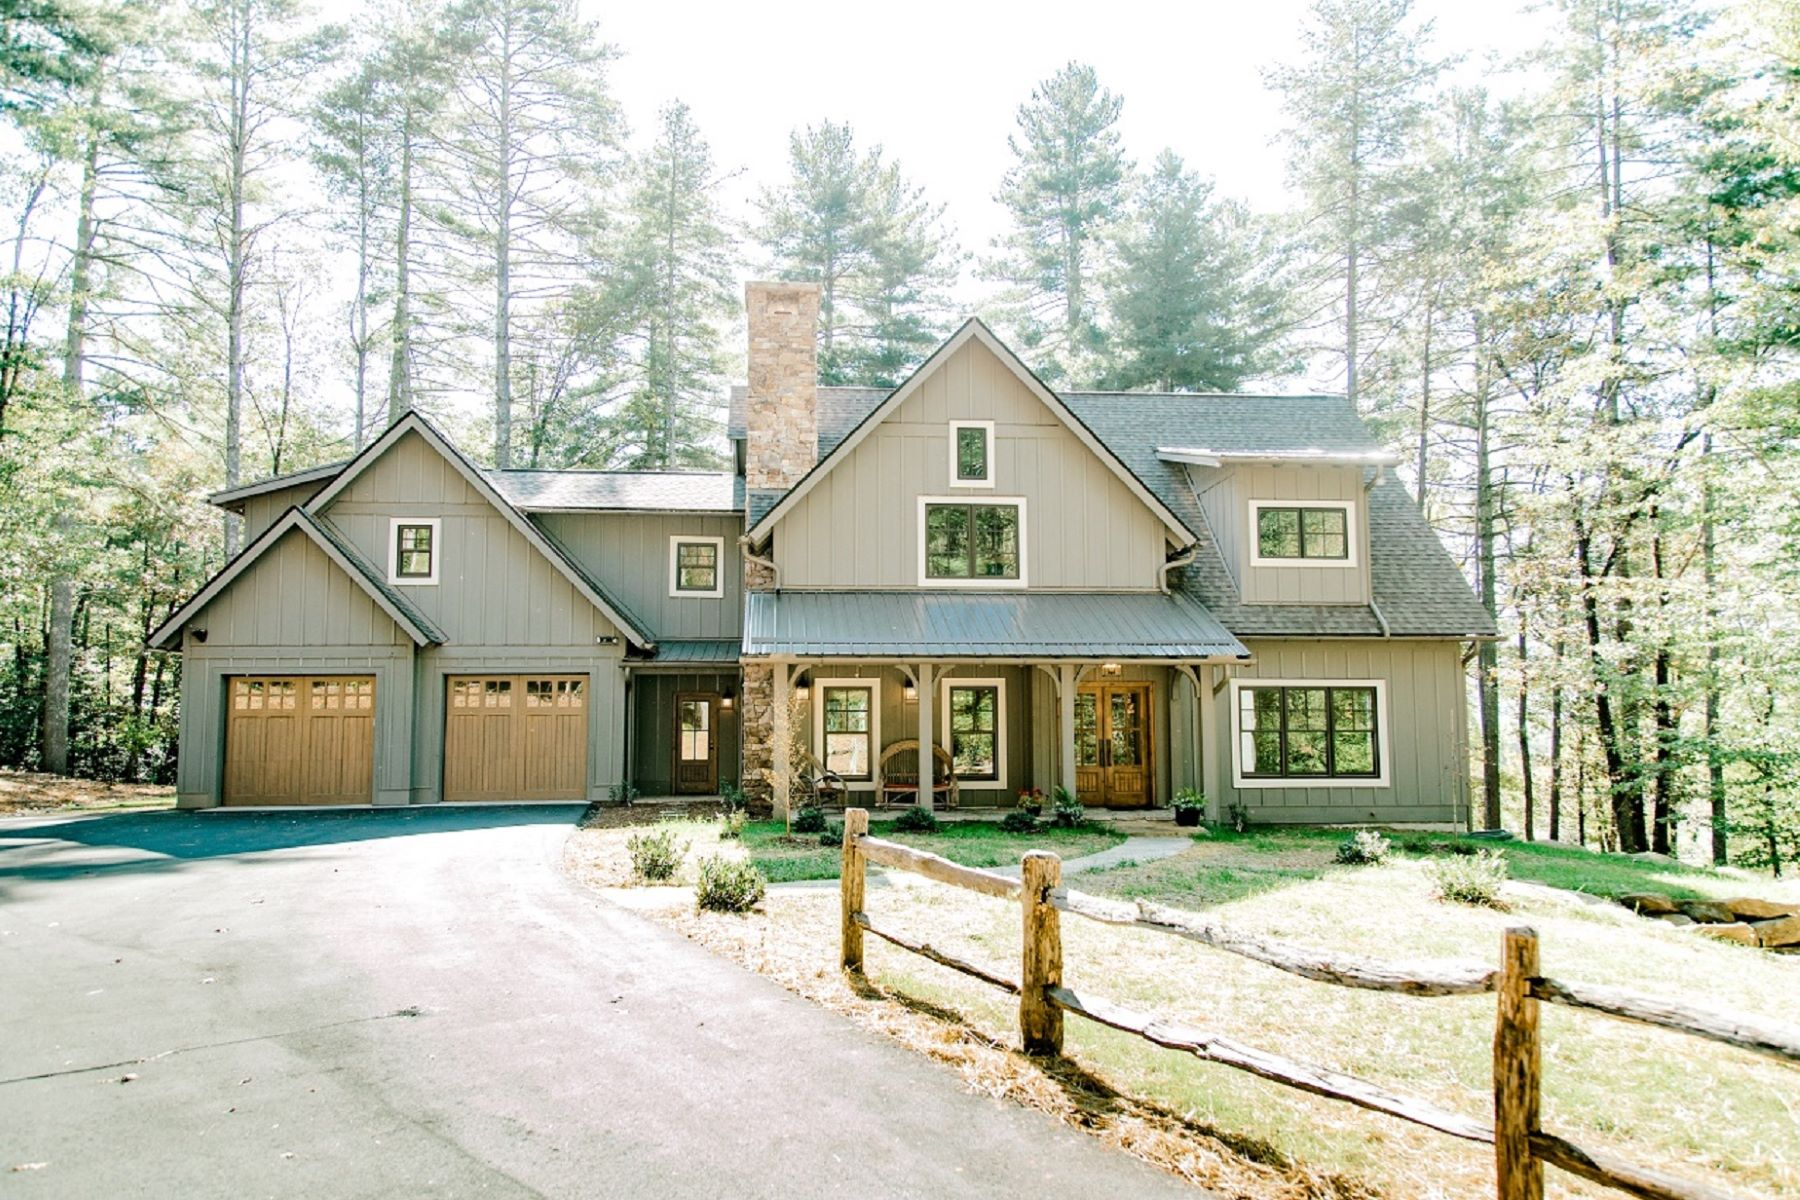 Single Family Homes for Sale at 60 Mountain Brook Trail Brevard, North Carolina 28712 United States